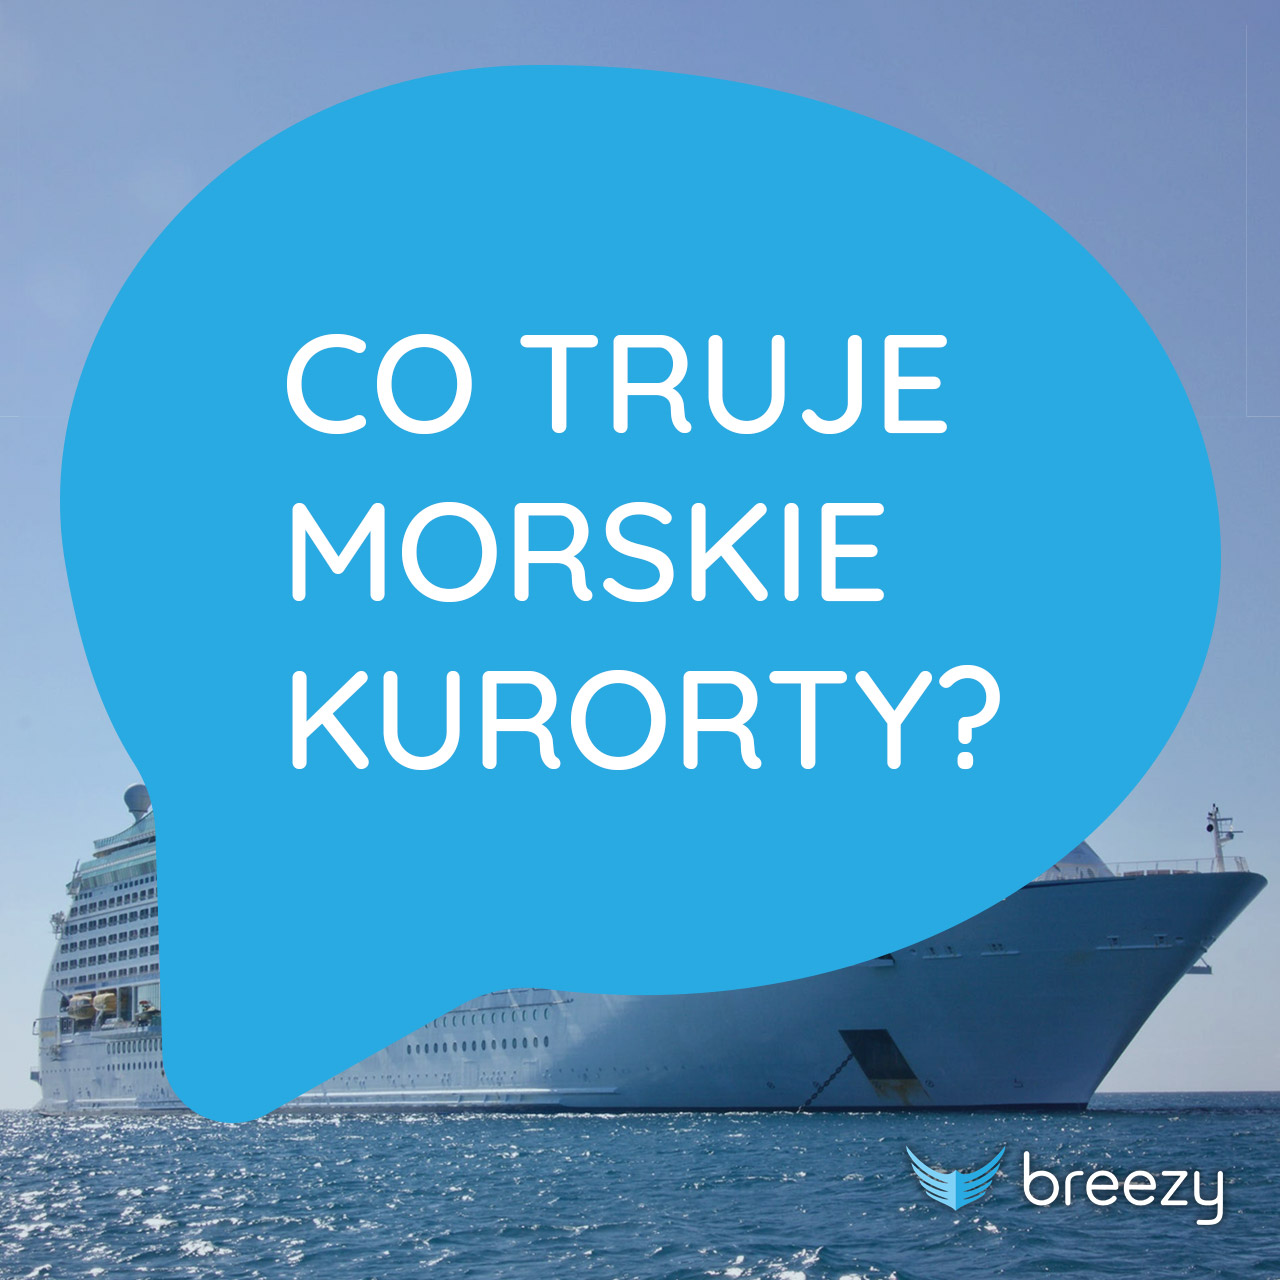 Co truje morskie kurorty?